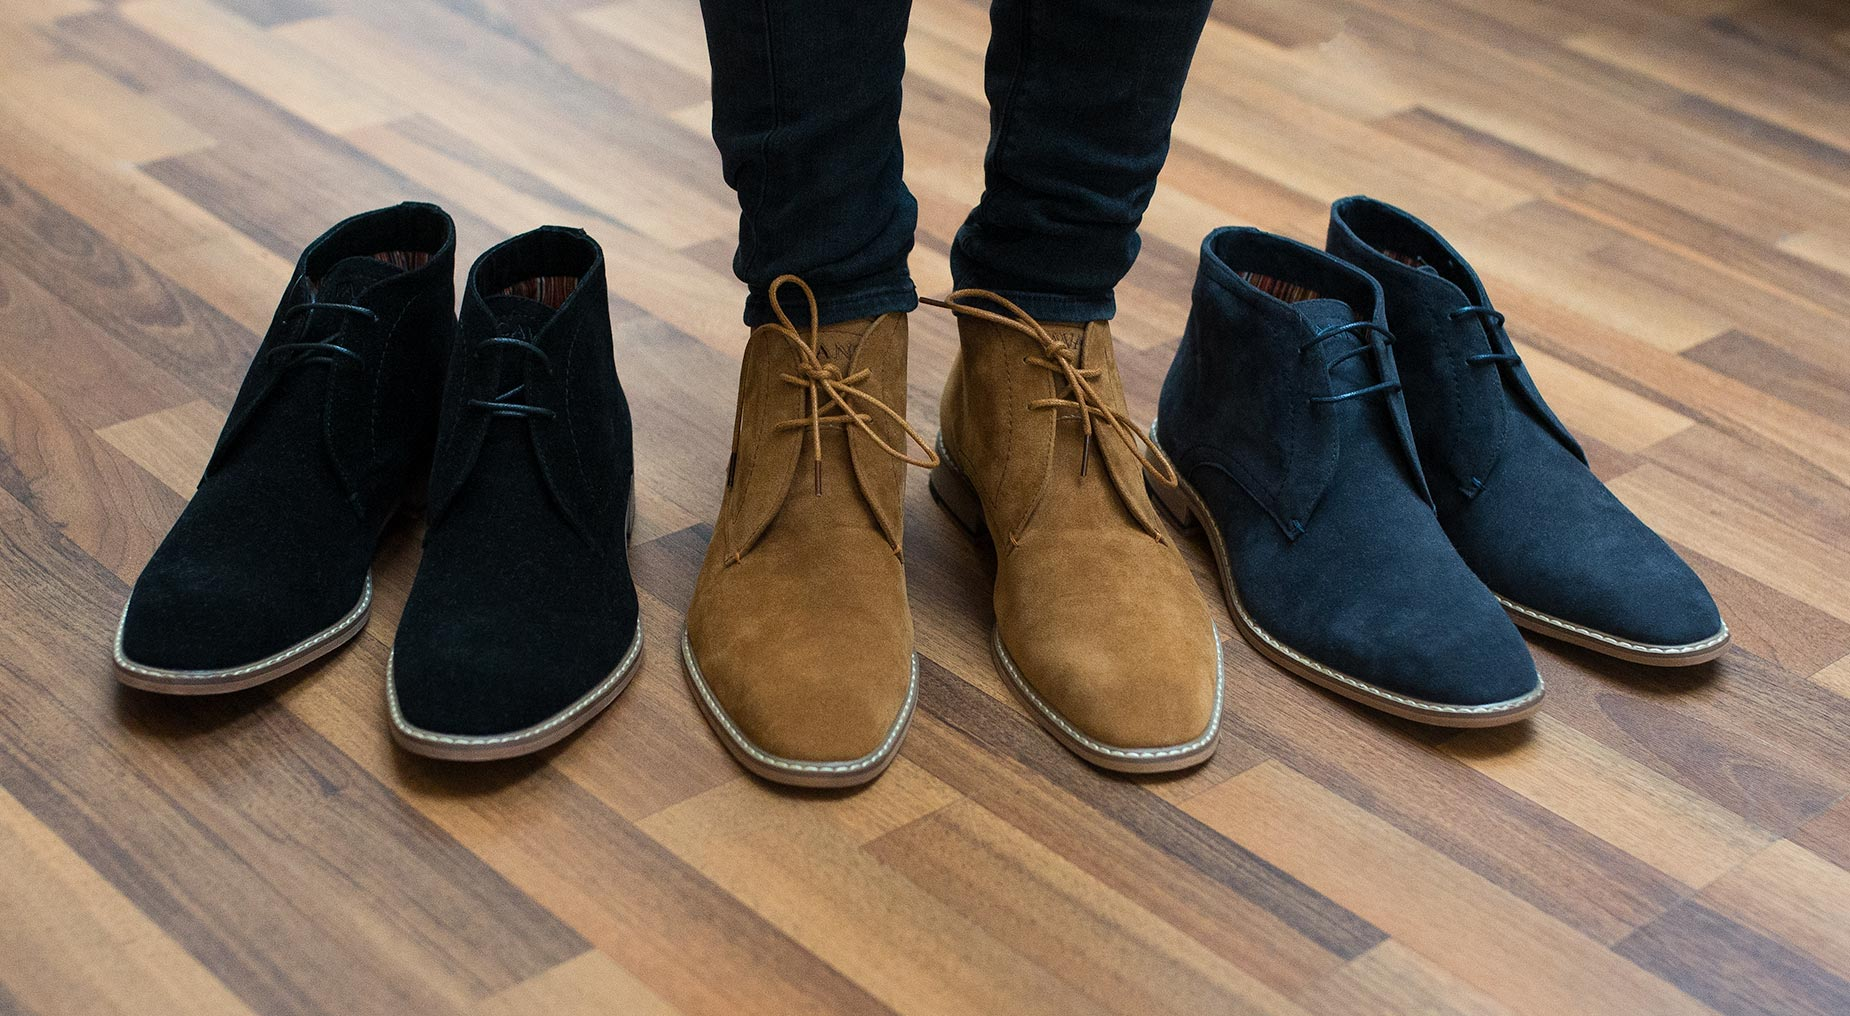 House Of Cavani James Lace Up Suede Boots